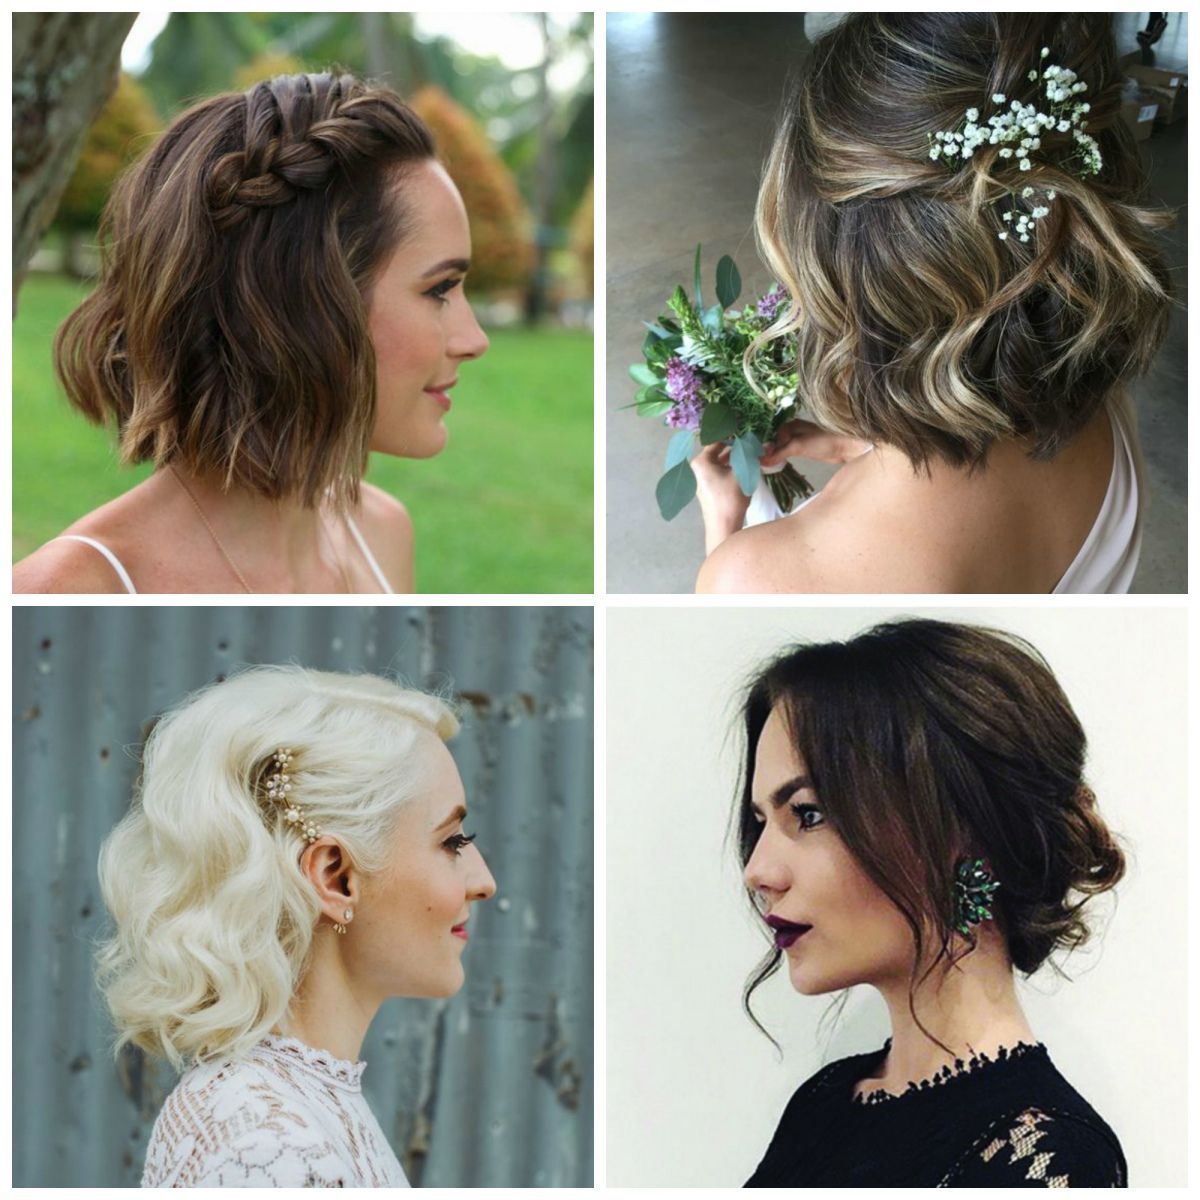 Hairstyle For Wedding Season: 13 Wedding Hairstyle For 2017